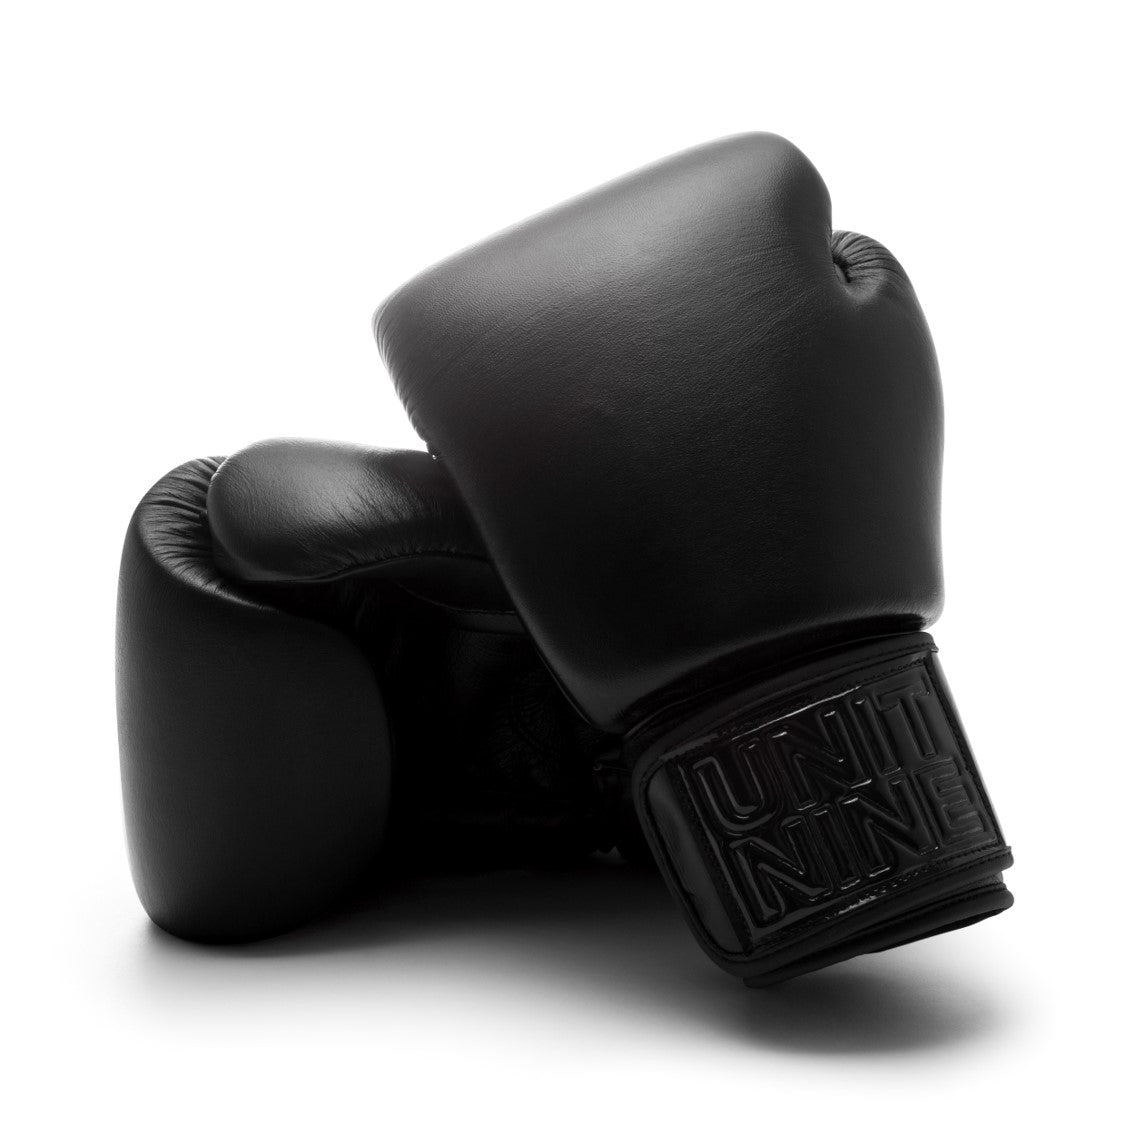 UNIT NINE Black Panther Boxing Gloves